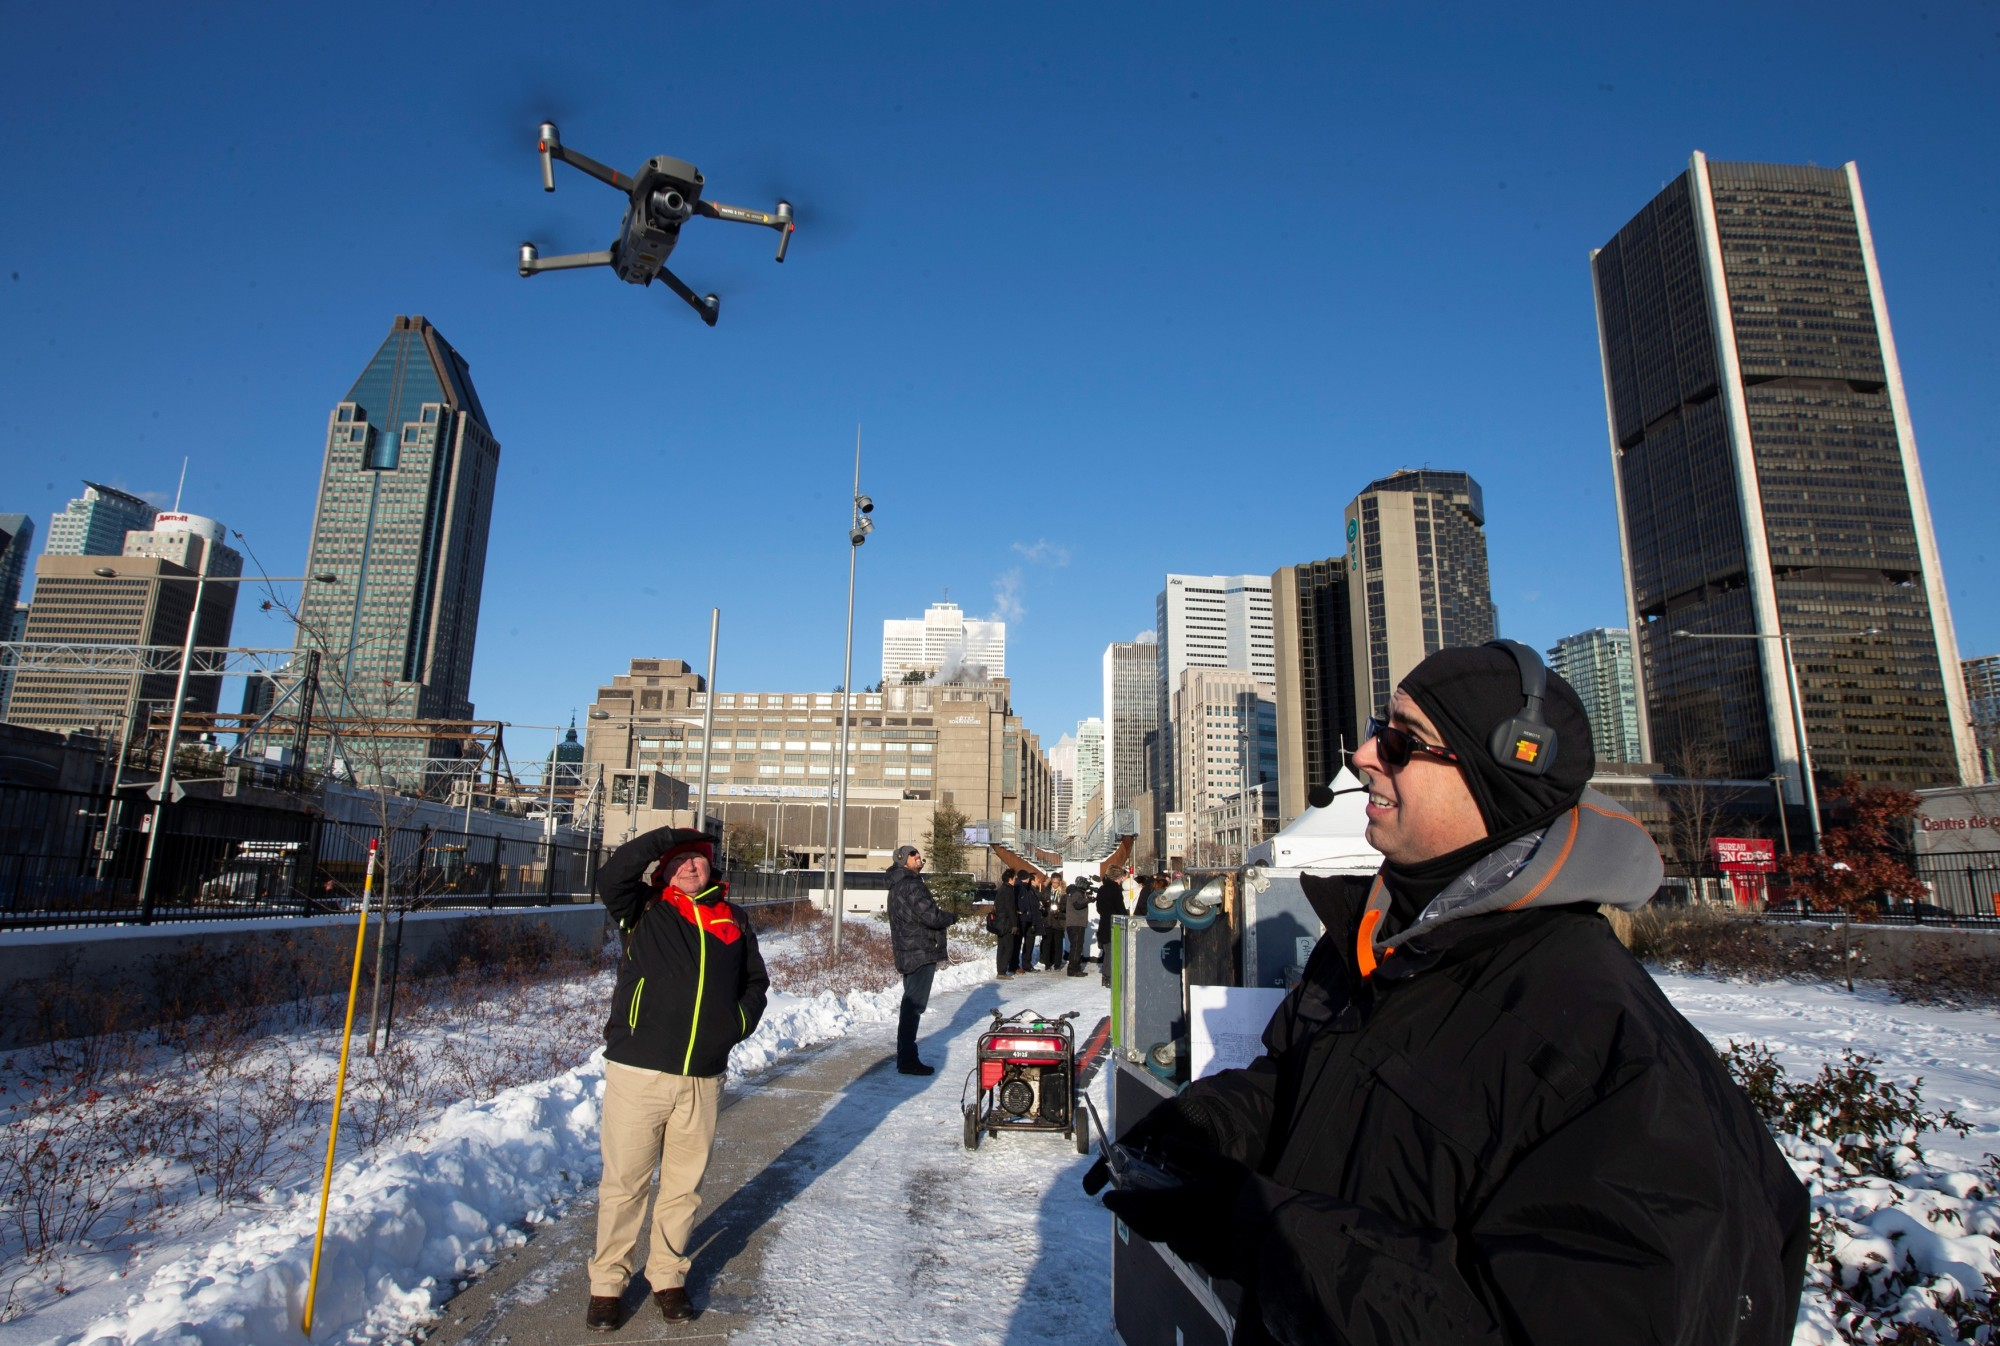 A drone operator flies his drone as Chinese drone maker DJI holds a demonstration to display an app that tracks a drone's registration and owner, in Montreal, Quebec, Wednesday. | REUTERS